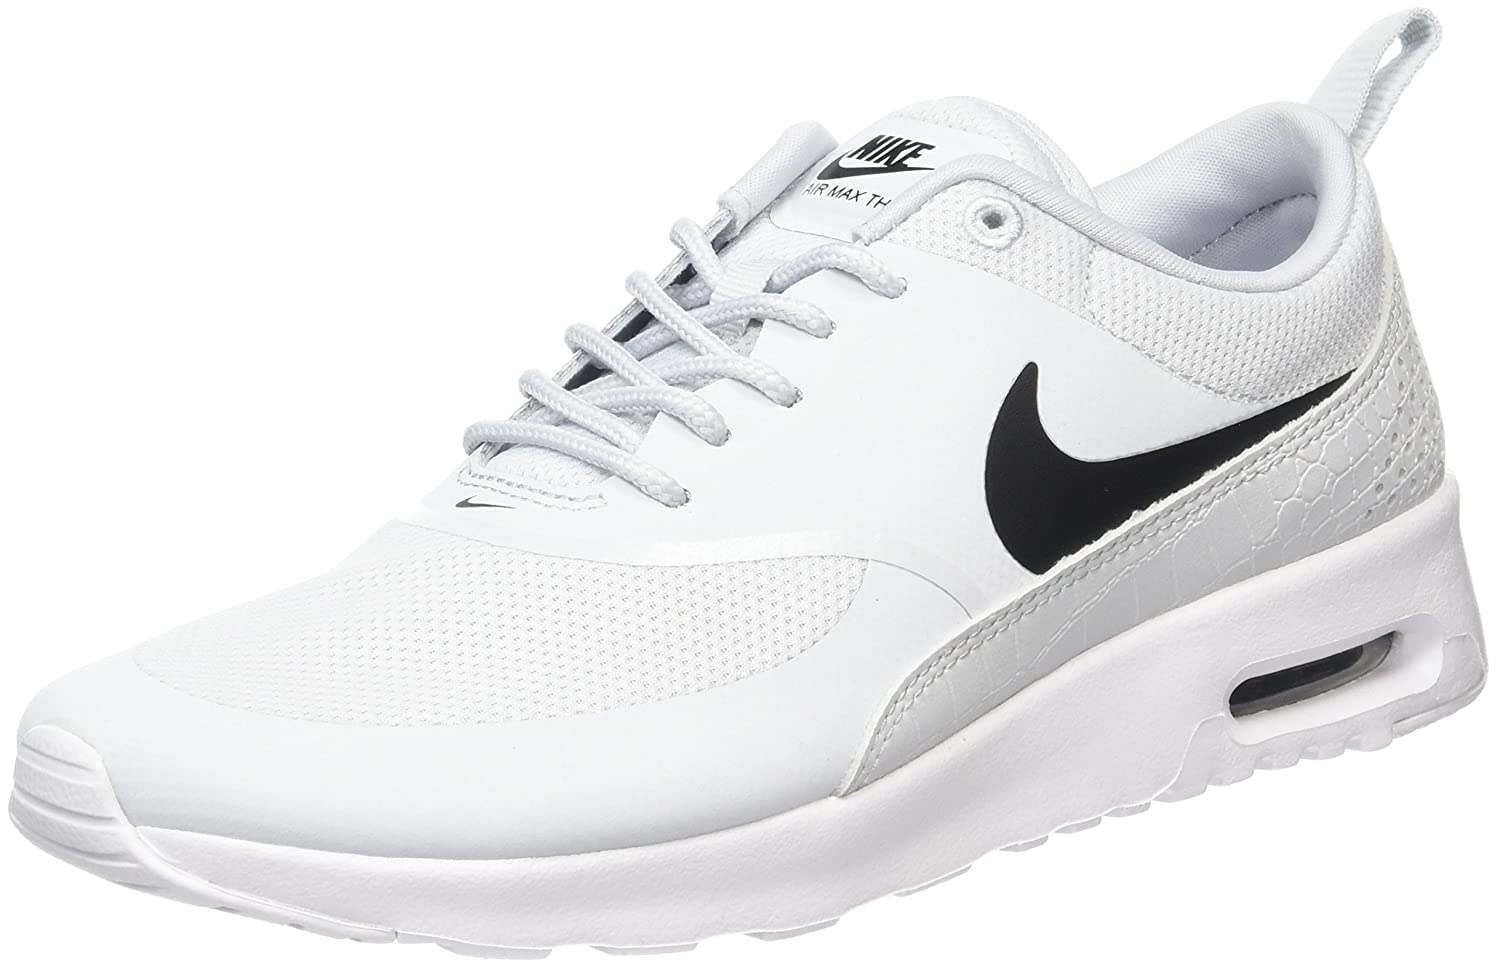 brand new 7ca39 ad449 Nike Womens Air Max Thea Pure PlatinumBlackWhite Running Shoe 7 Women  US Amazon.in Shoes  Handbags